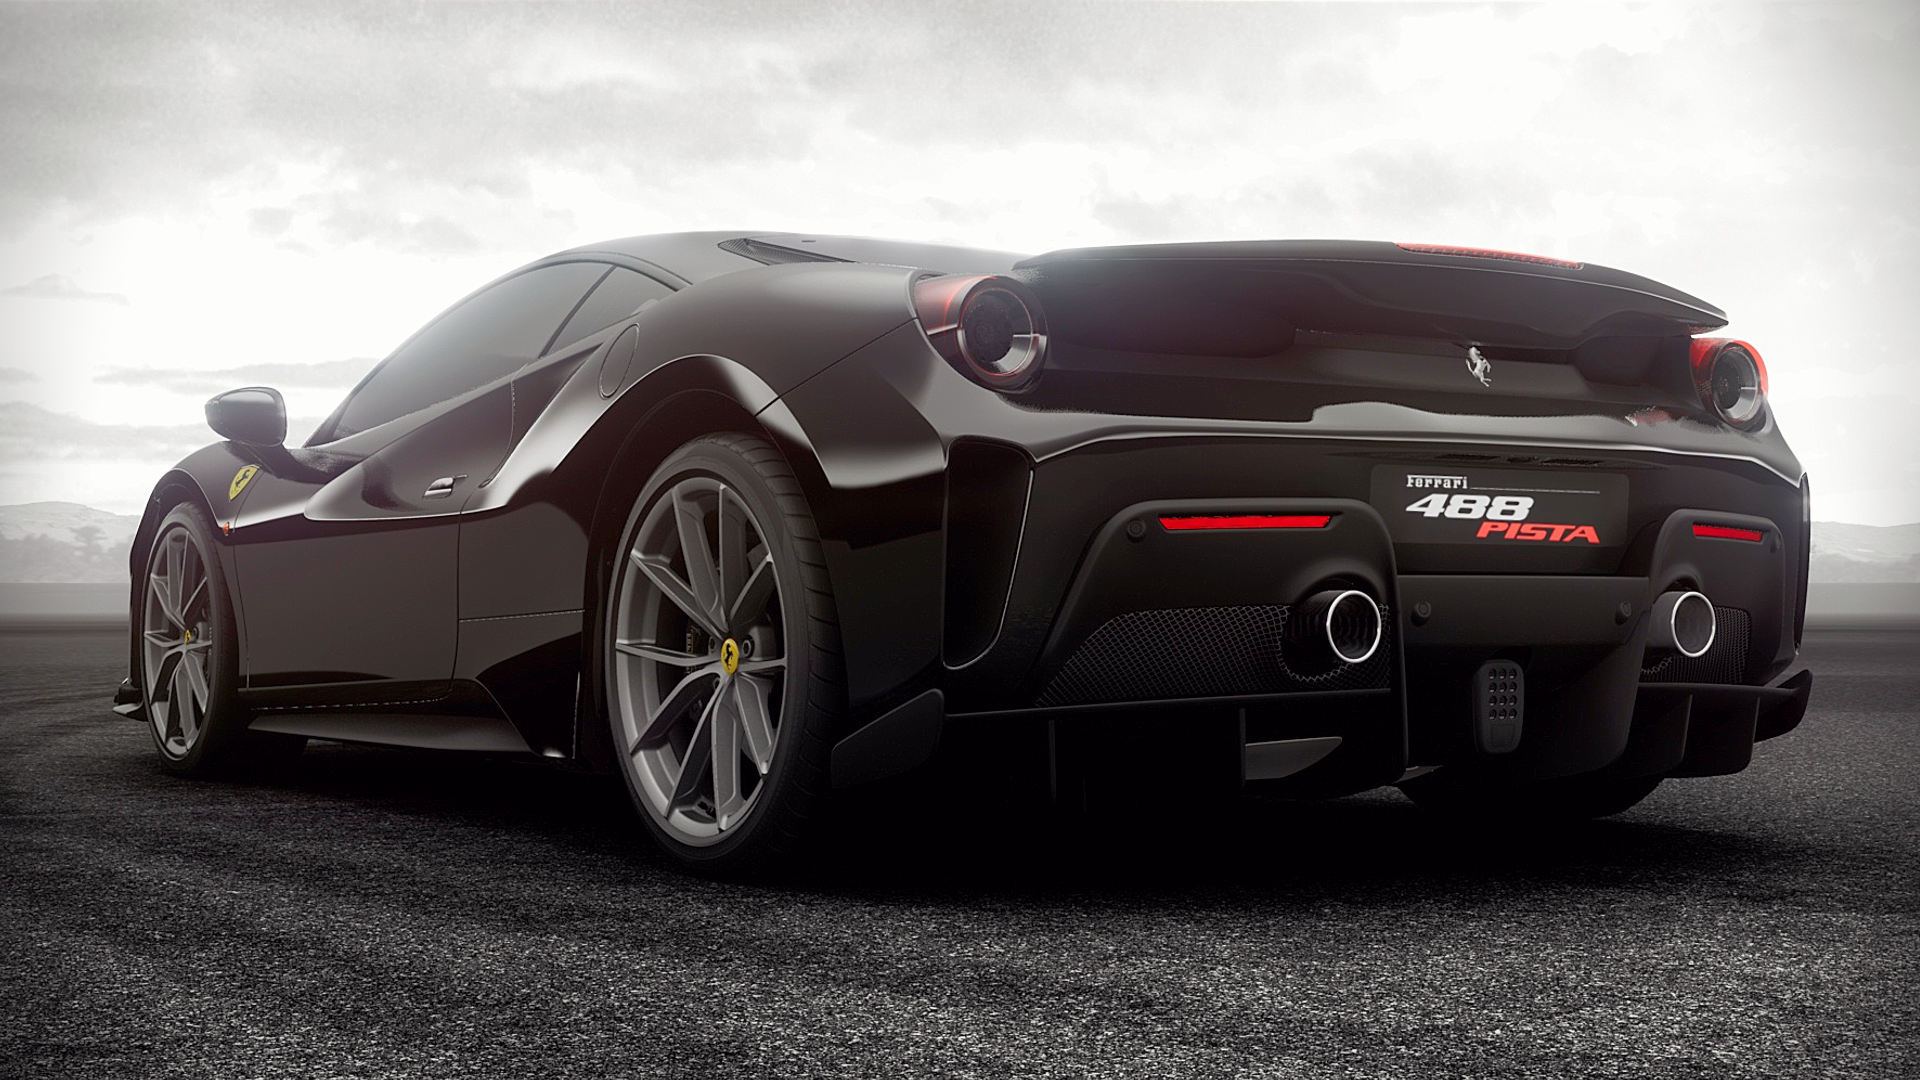 2019 Ferrari 488 Pista Black Wallpaper